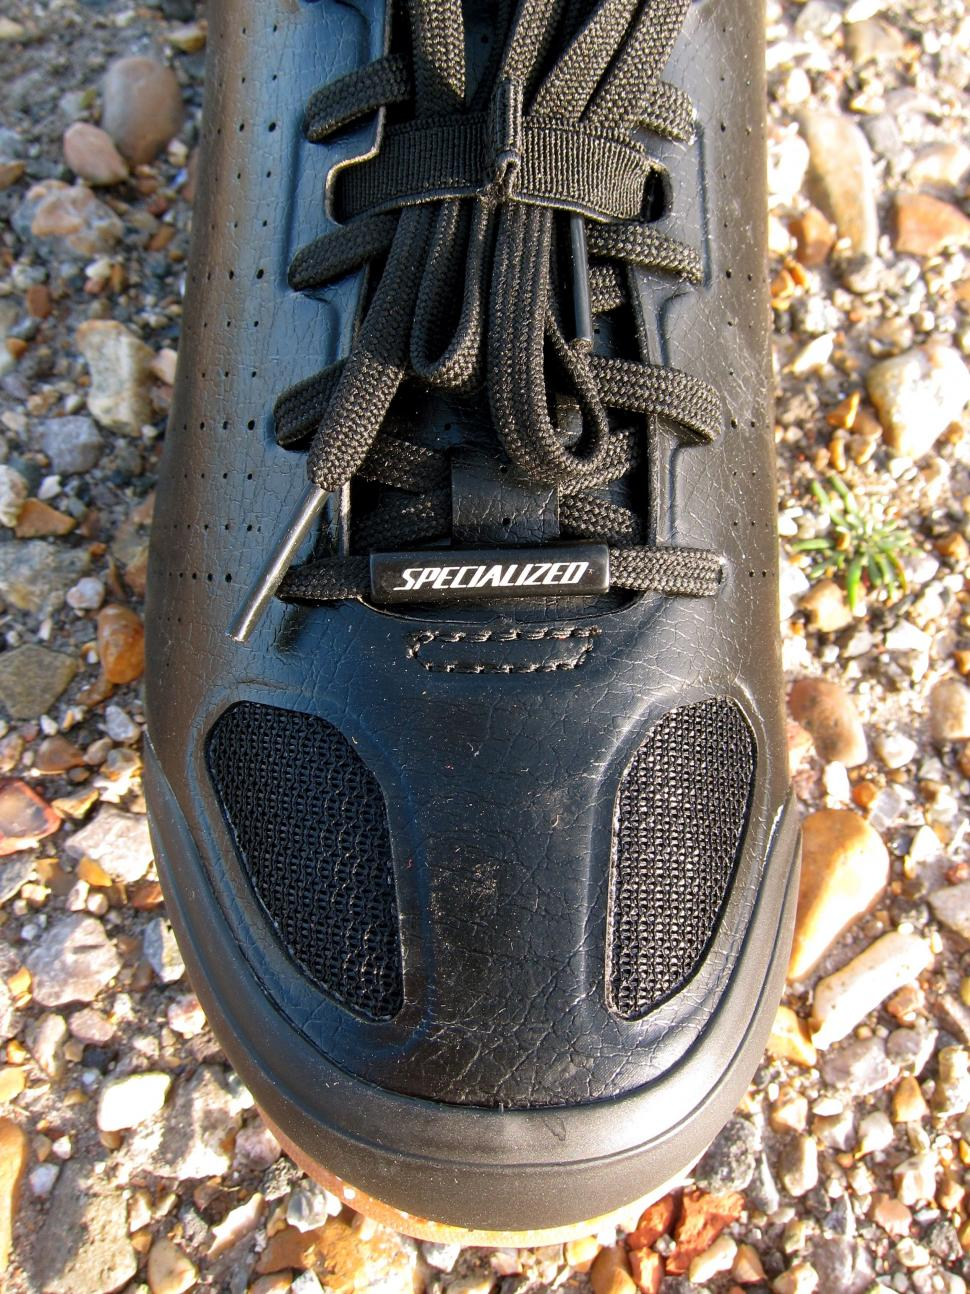 Specialized Recon Mixed Terrain Shoes - Toe Mesh.jpg